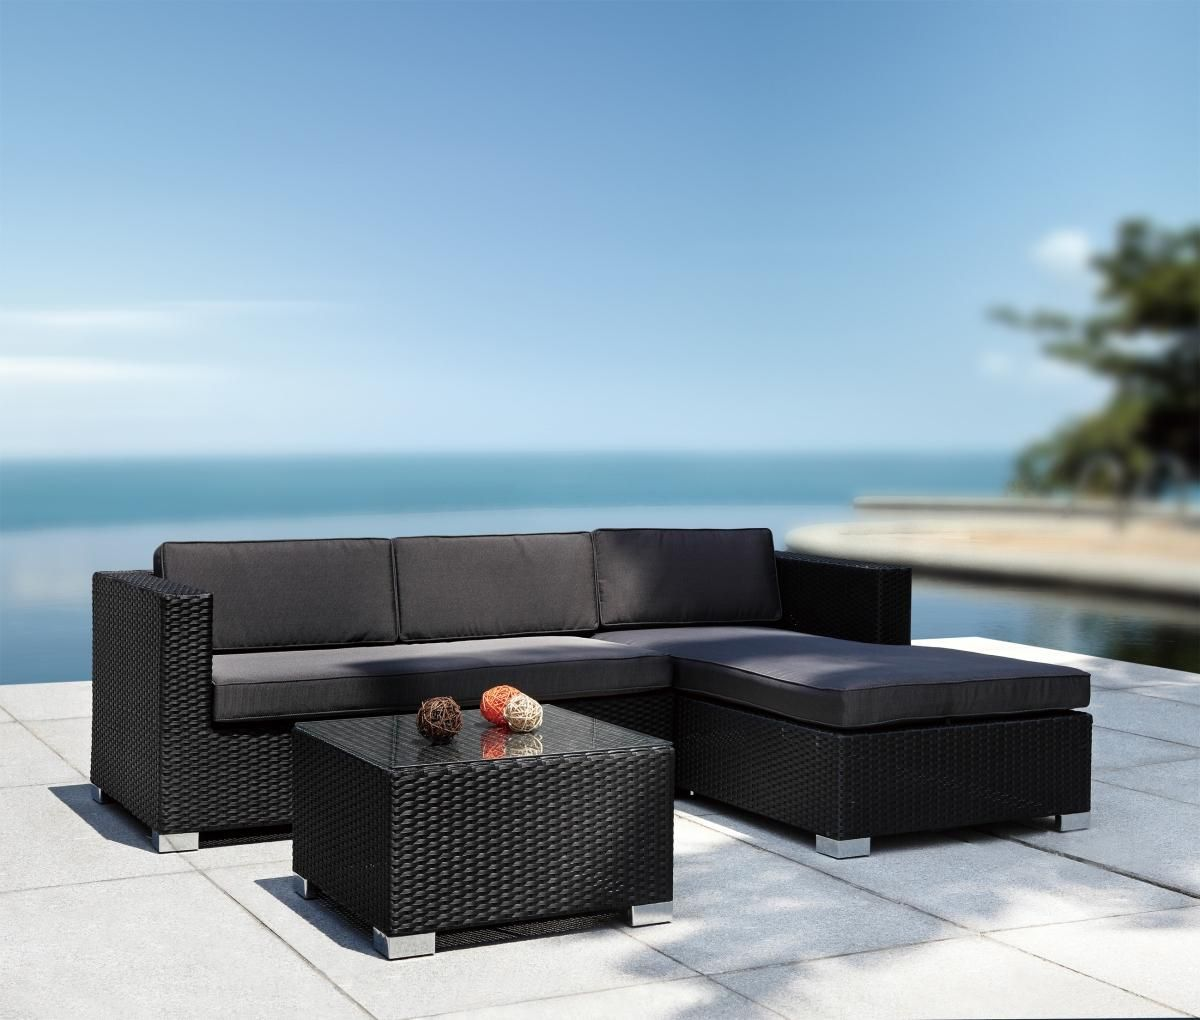 Ordinaire Renava Coiba   Modern Outdoor Sectional Sofa And Coffee Table. Distributed  By VIG Furniture.